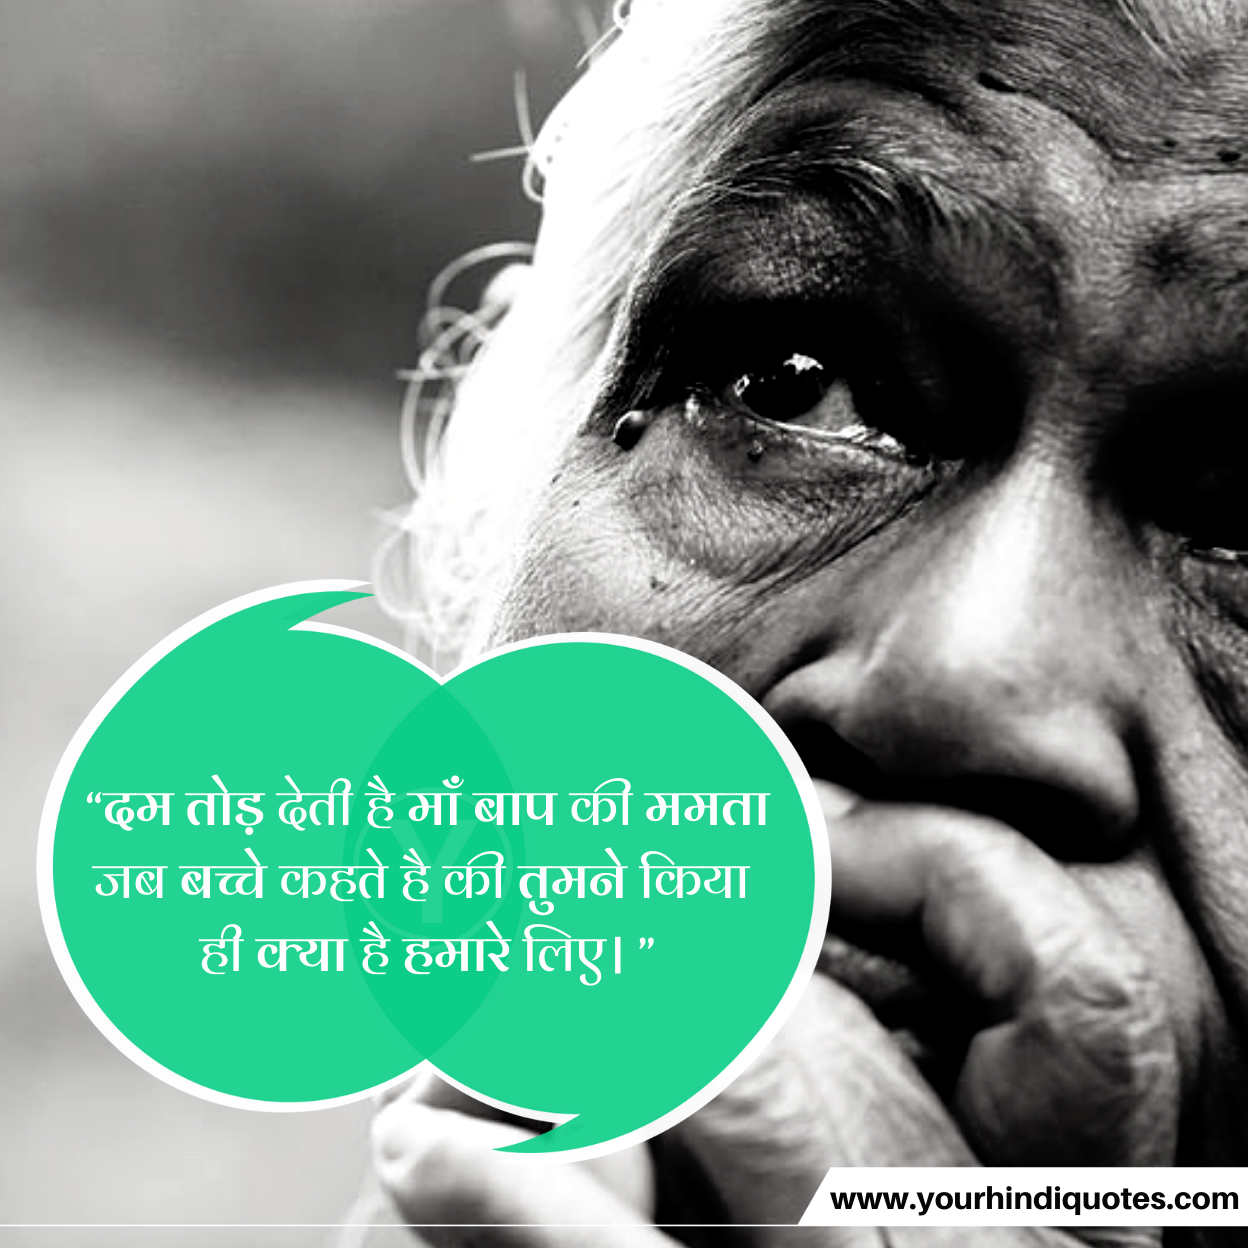 Best Hindi Life Quotes Pic